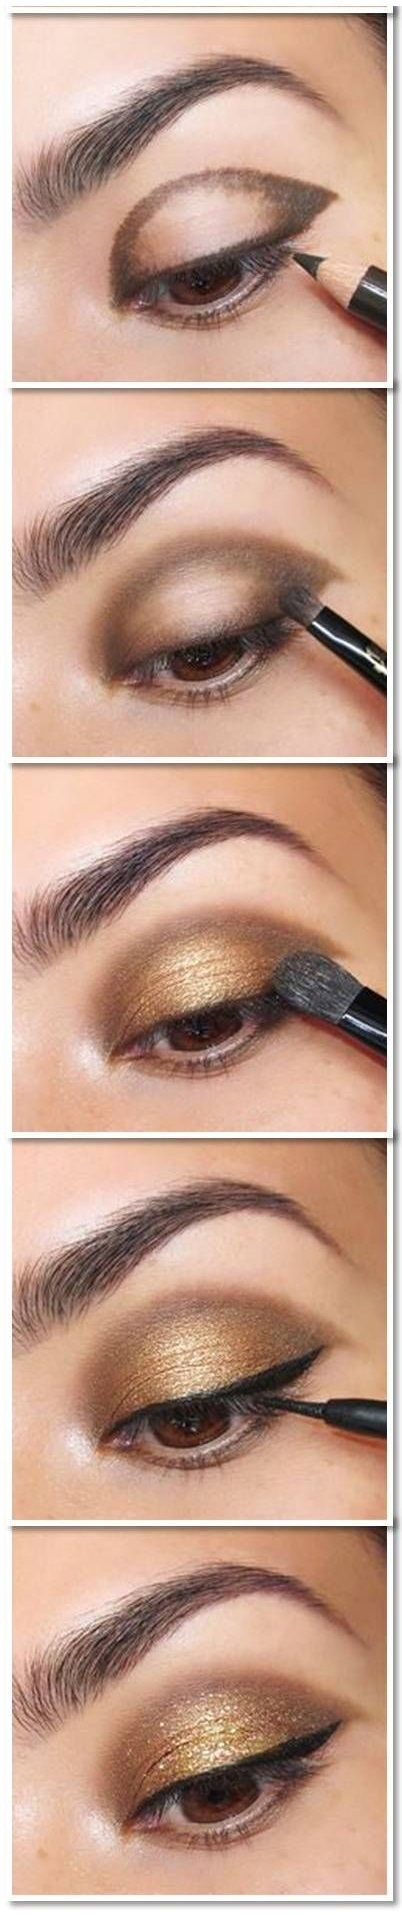 Simple Gold Eye Makeup tutorial. Here is a broken down eye makeup tutorial. I is so beautiful and fun to wear. What a great method to get a lovely eye makeup! #makeup #eyes #sexy #women